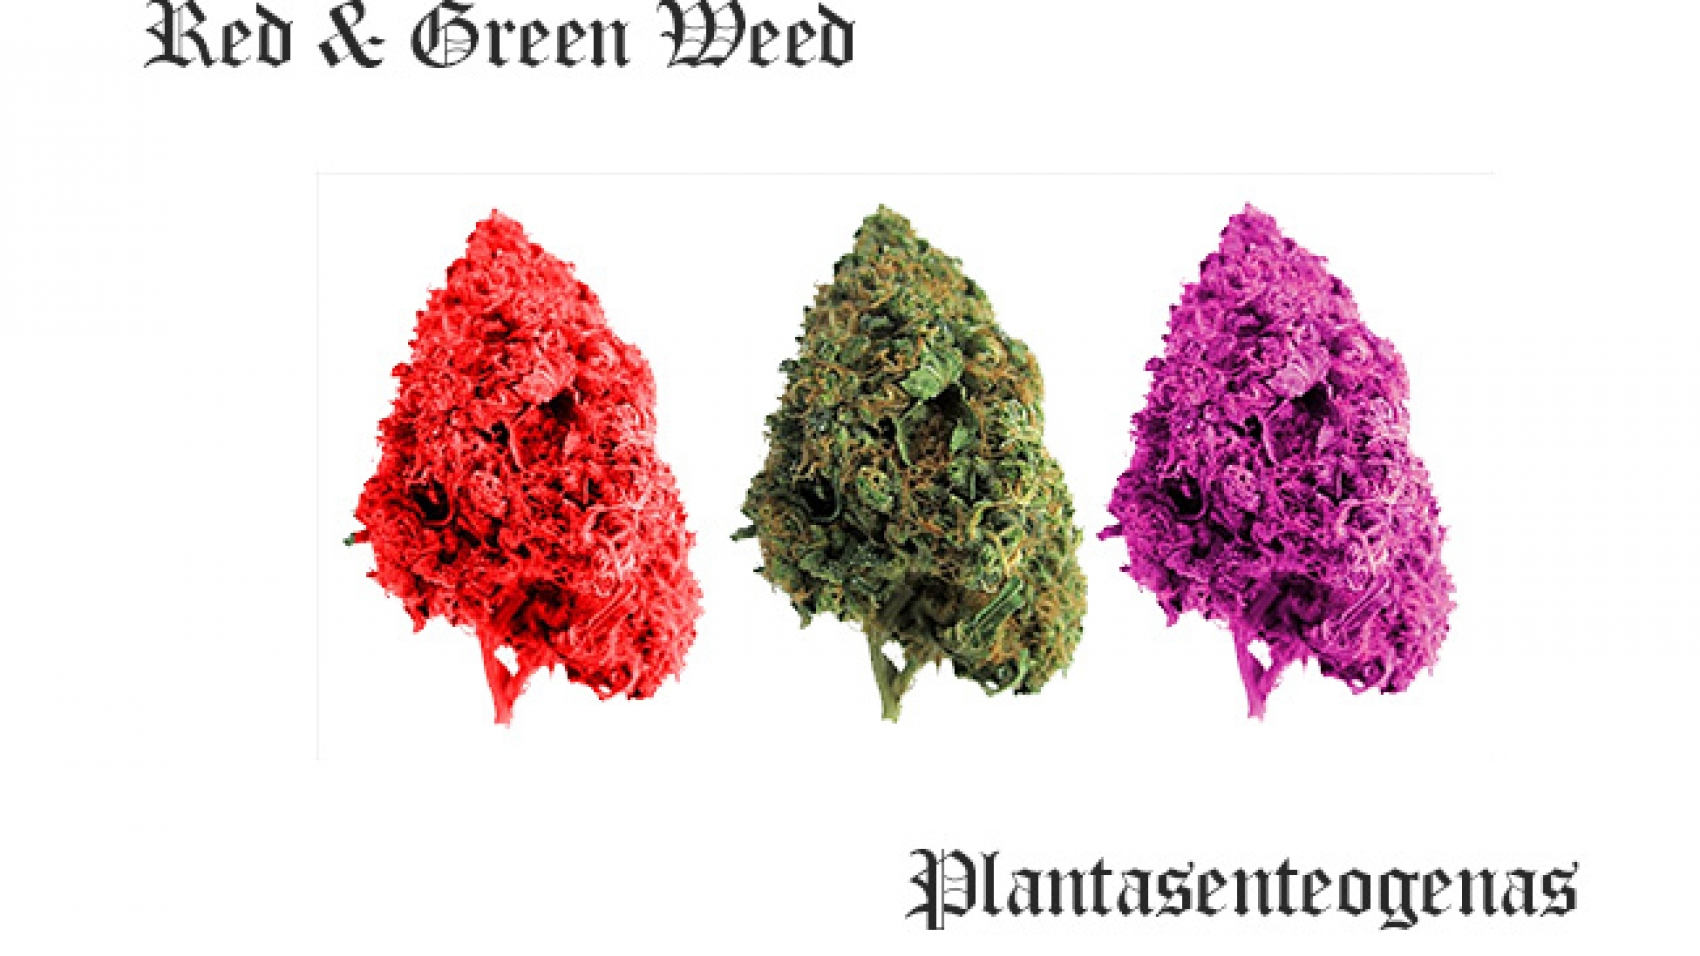 Red & Green Weed